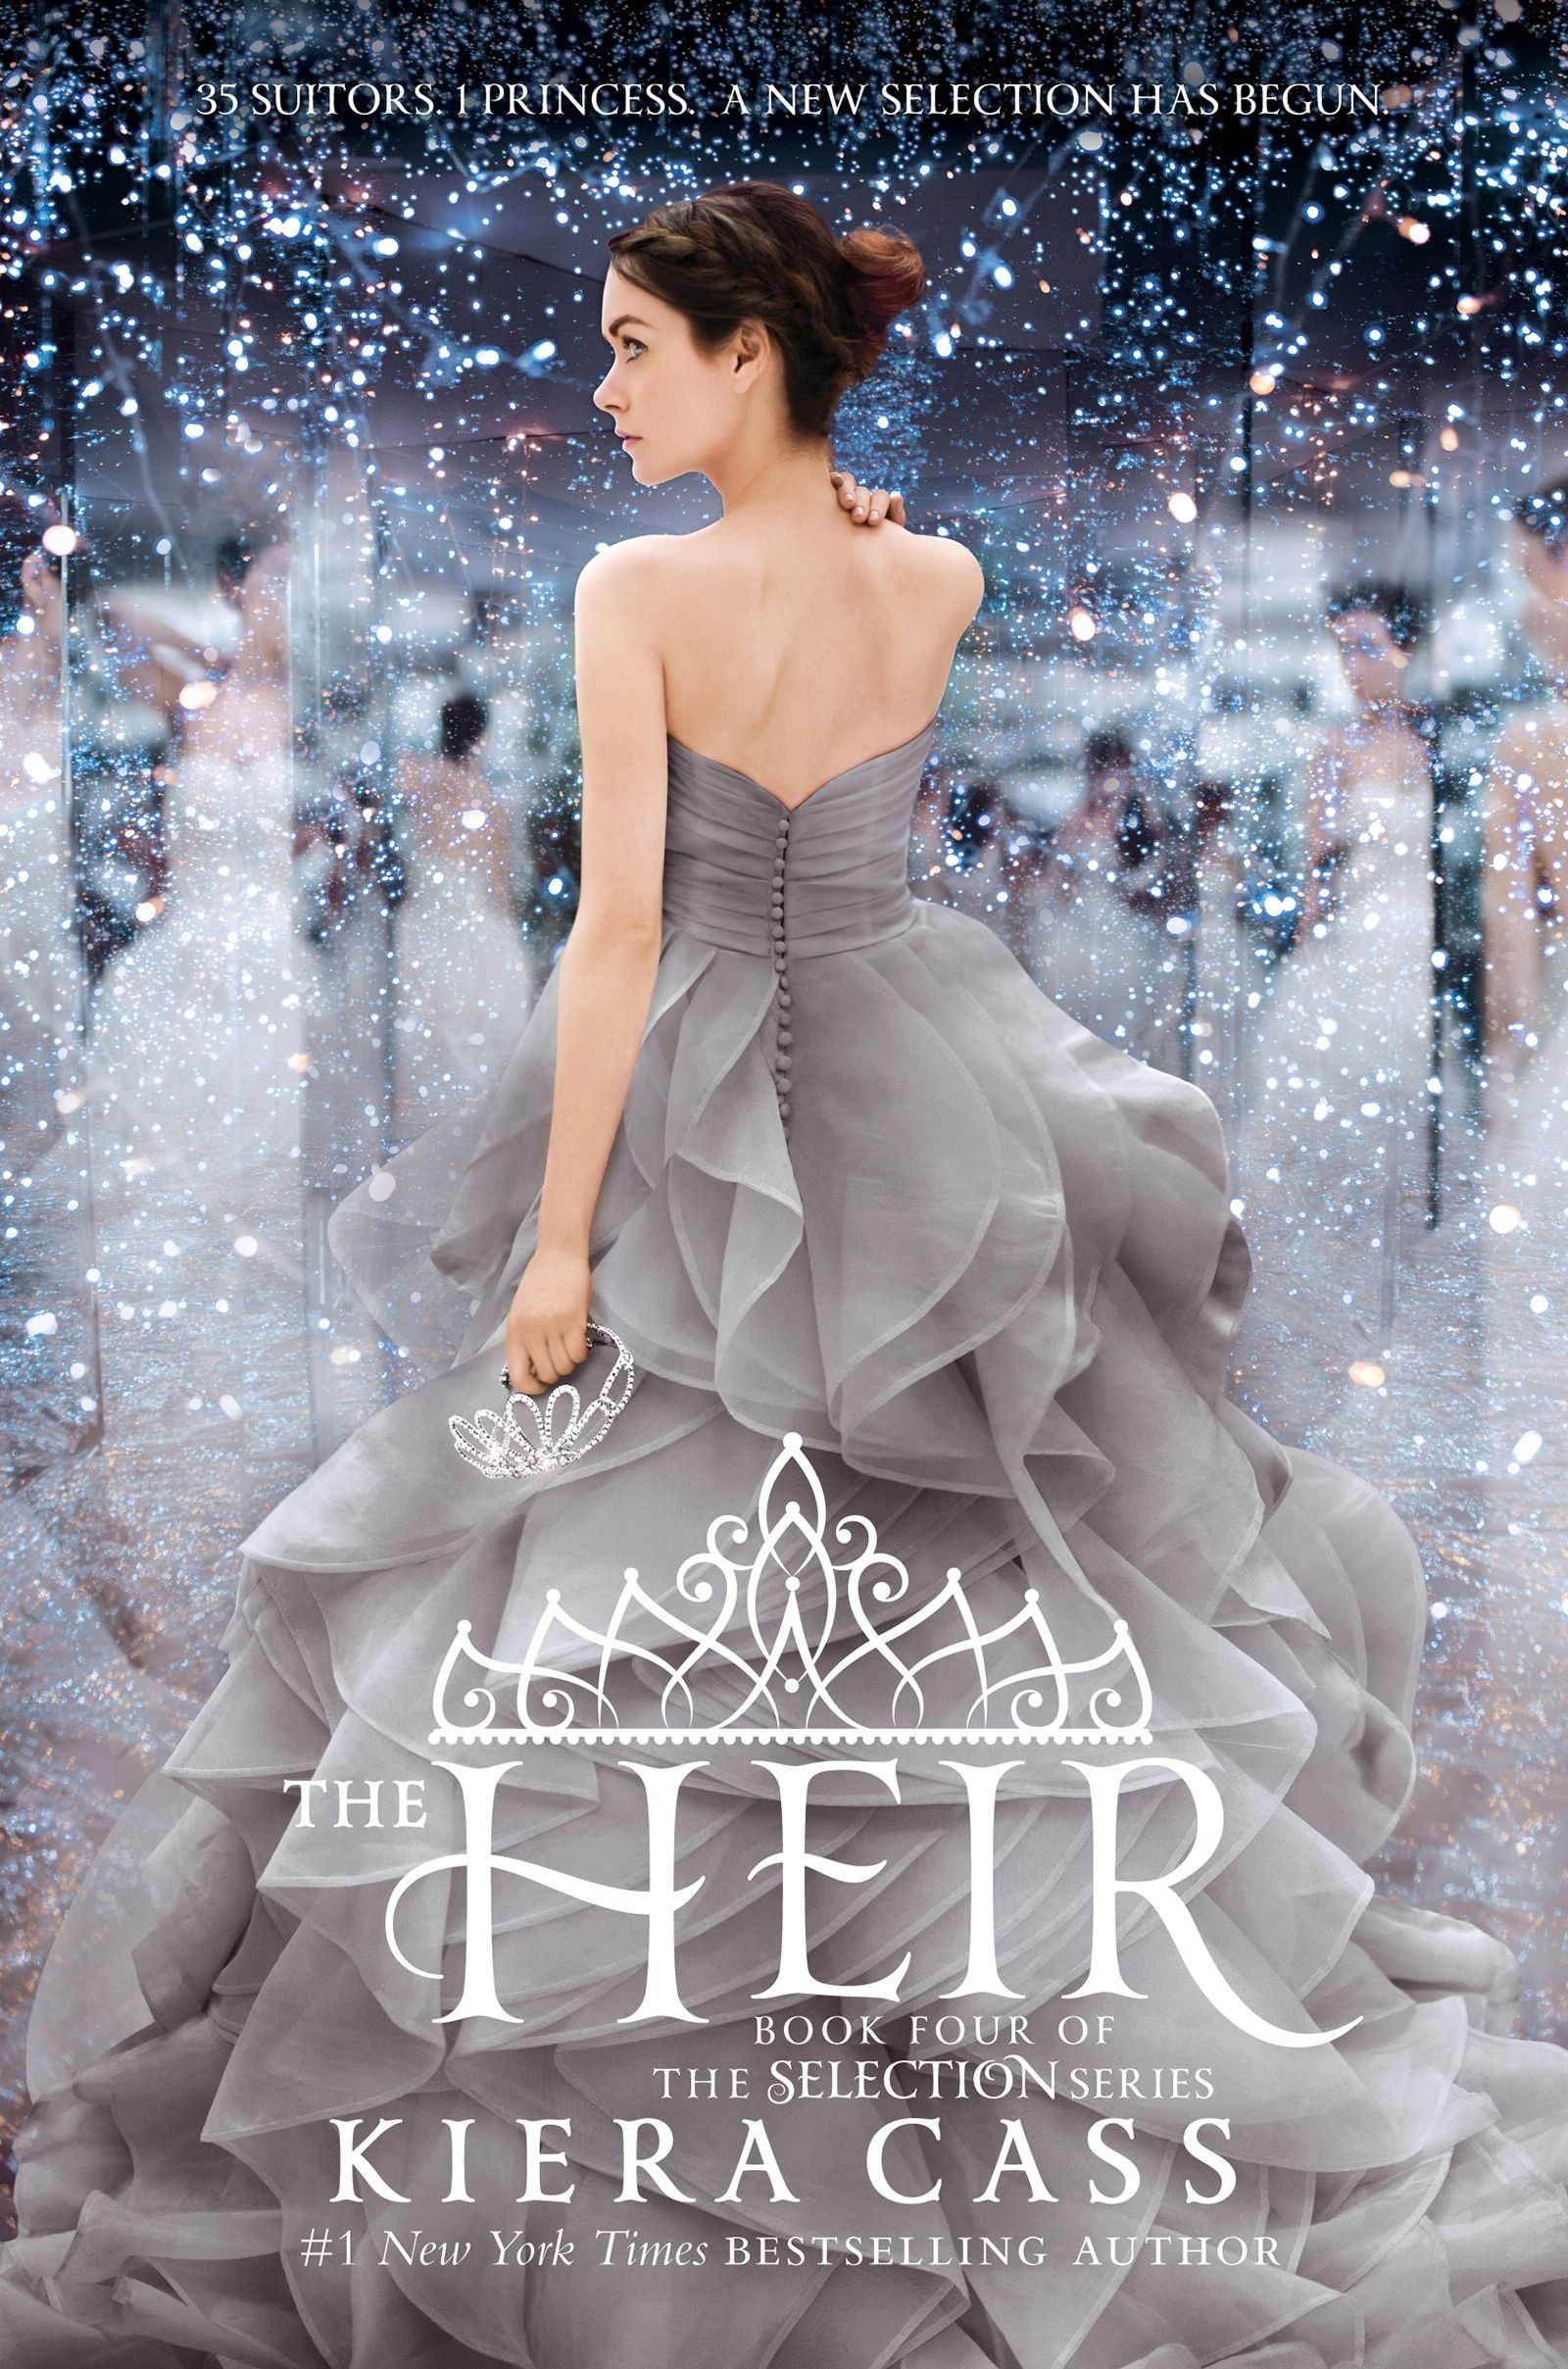 The Heir (The Selection Book 4) by Kiera Cass | HarperTeen | May 5, 2015